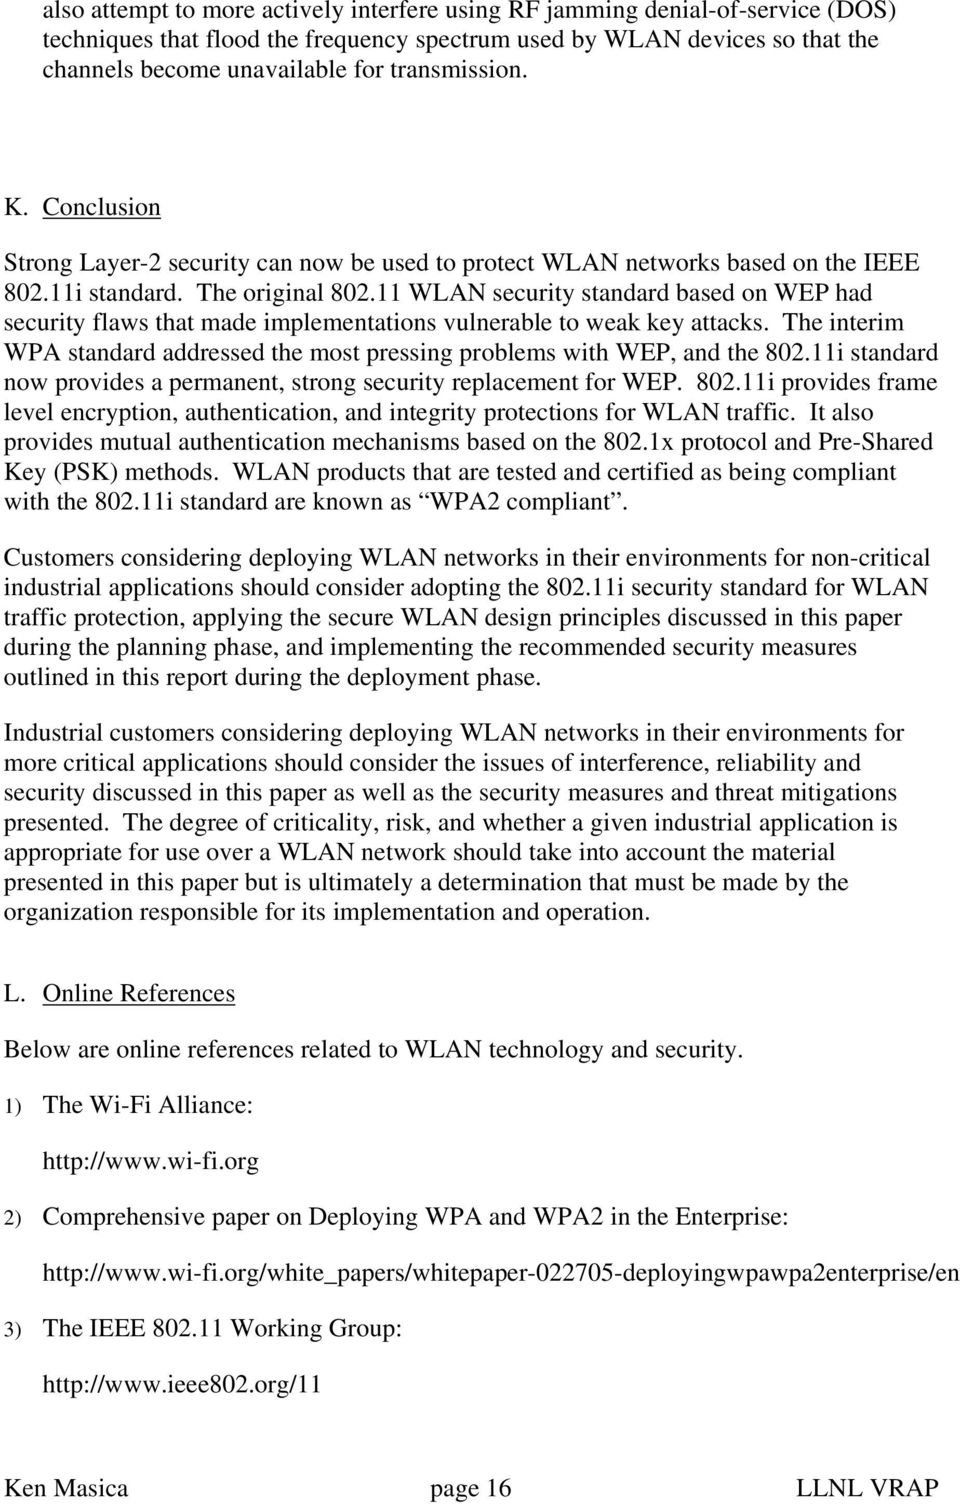 11 WLAN security standard based on WEP had security flaws that made implementations vulnerable to weak key attacks. The interim WPA standard addressed the most pressing problems with WEP, and the 802.